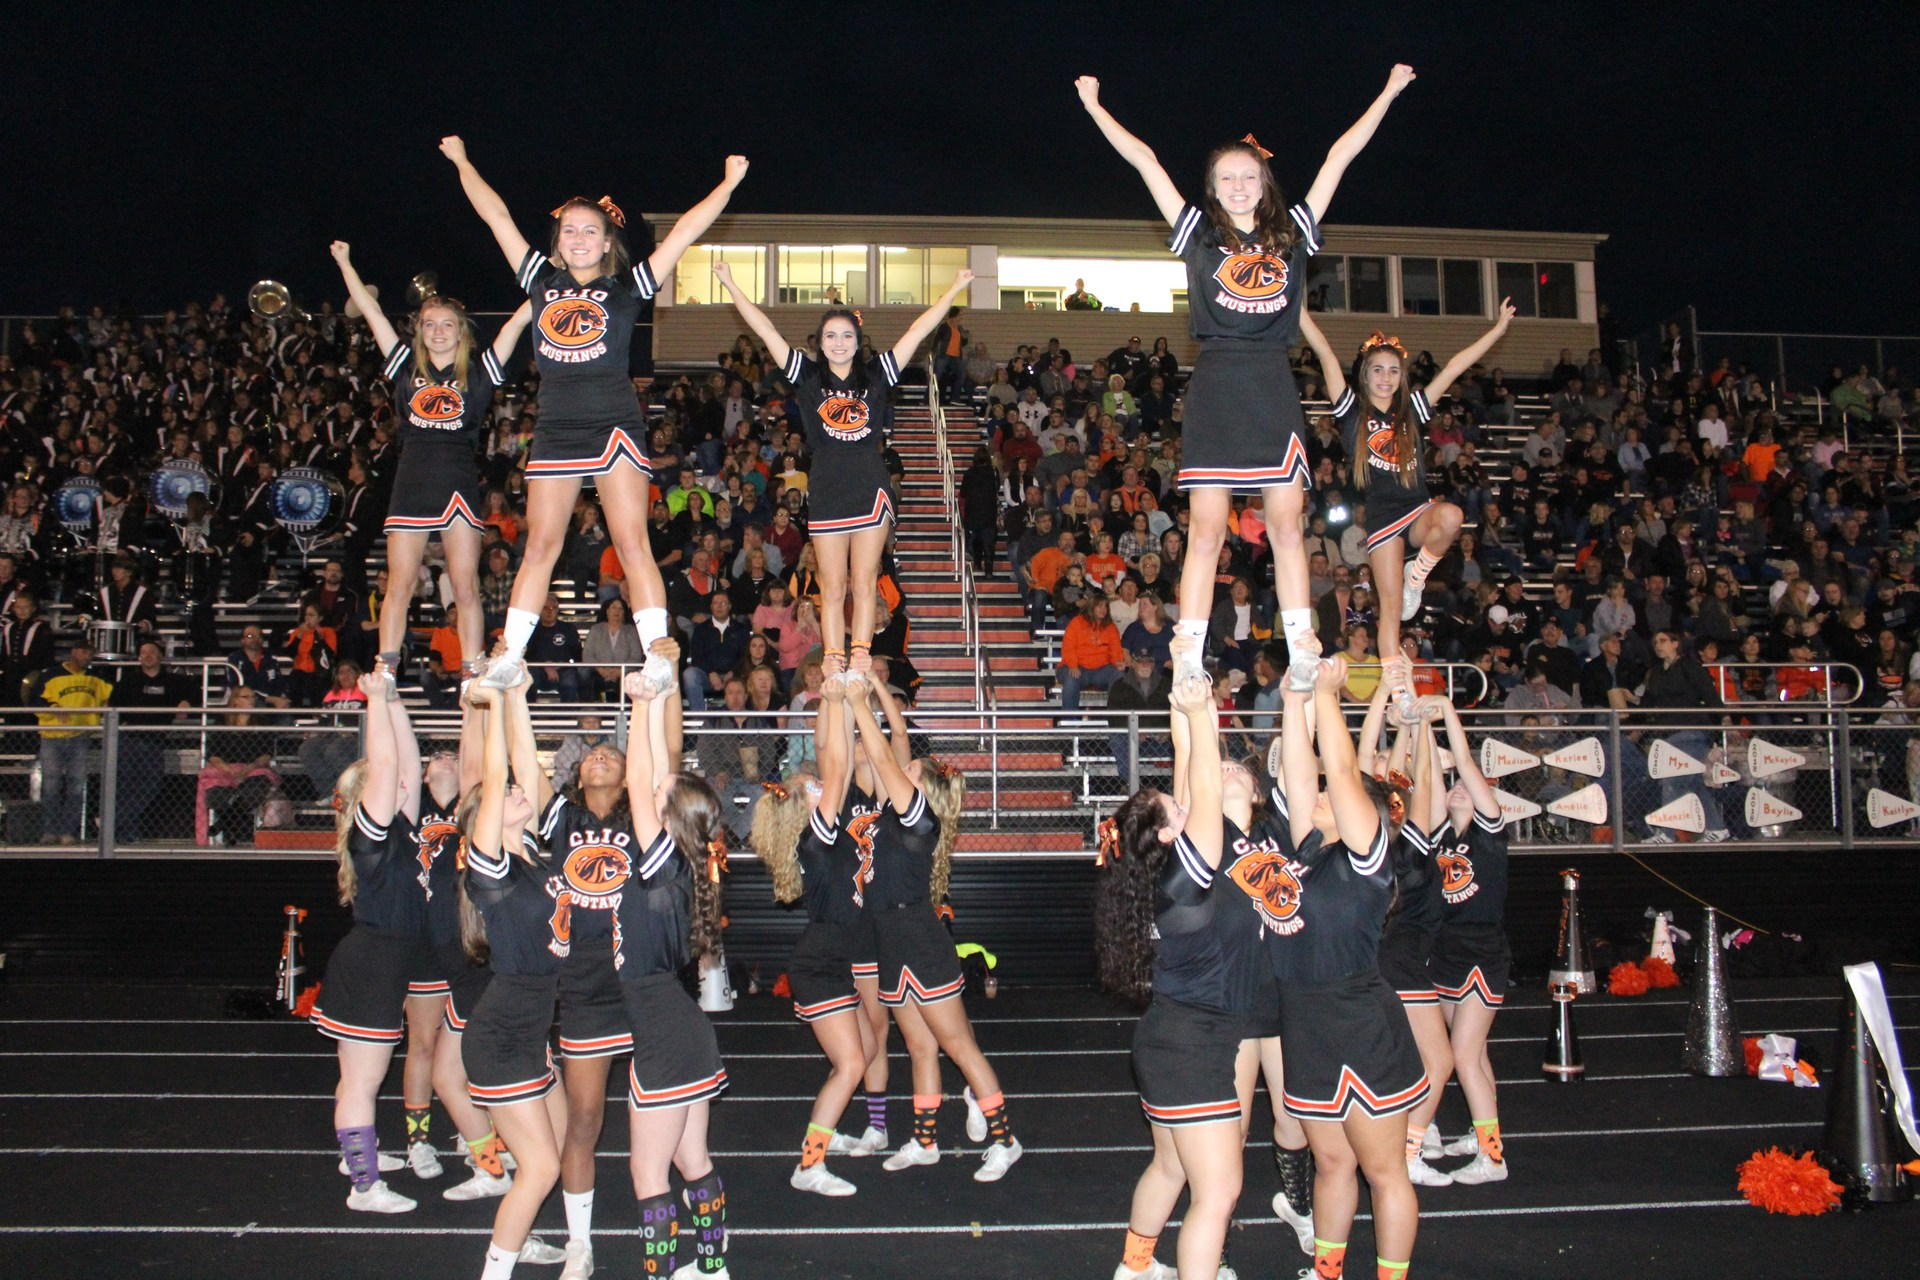 photo of cheerleaders in pyramid formation